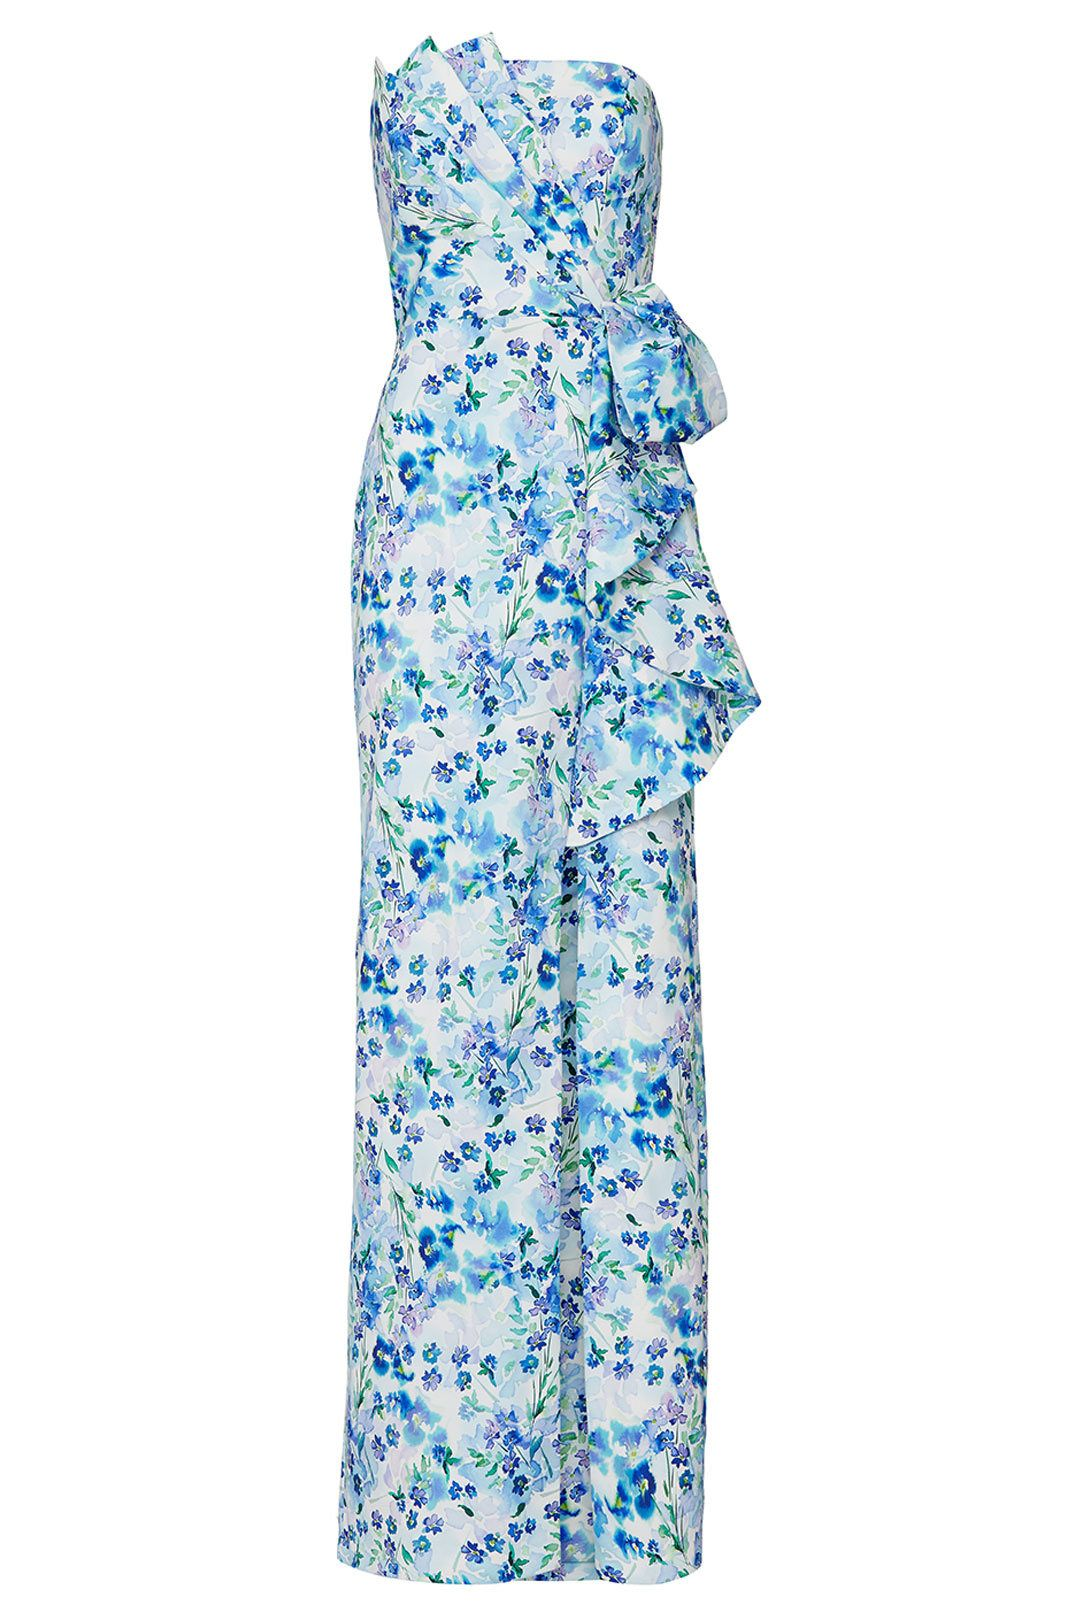 Parker Roberta Gown In 2021 Rent Designer Dresses Womens Dresses Gowns